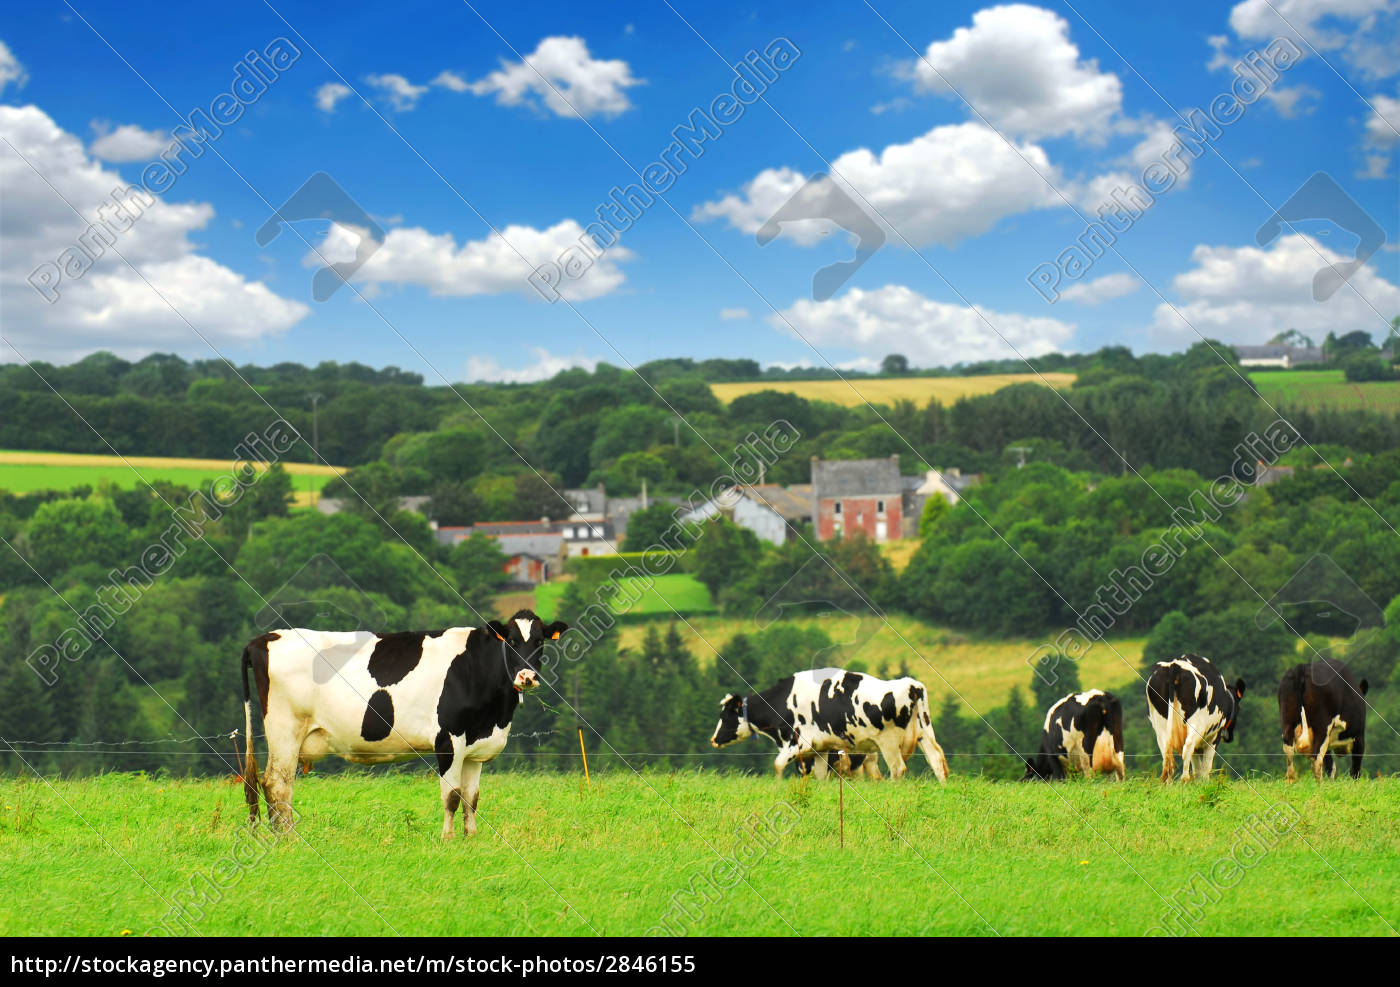 agricultural, city, town, hill, animal, agriculture - 2846155